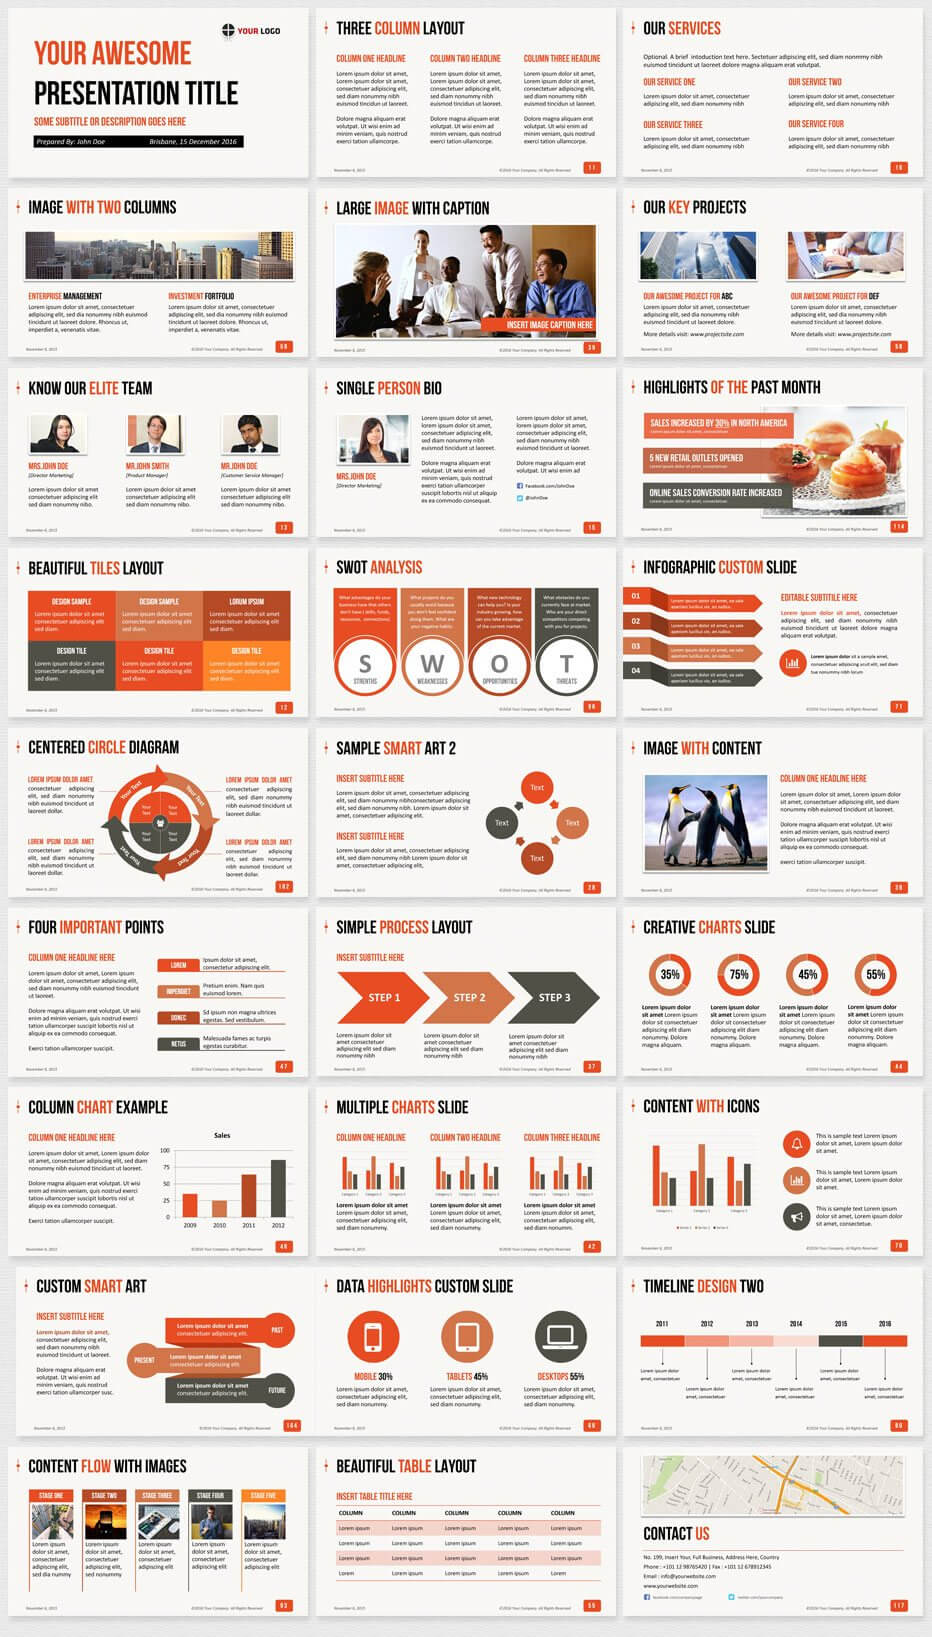 Ultimate Professional Business Powerpoint Template - 1650+ With Powerpoint 2013 Template Location